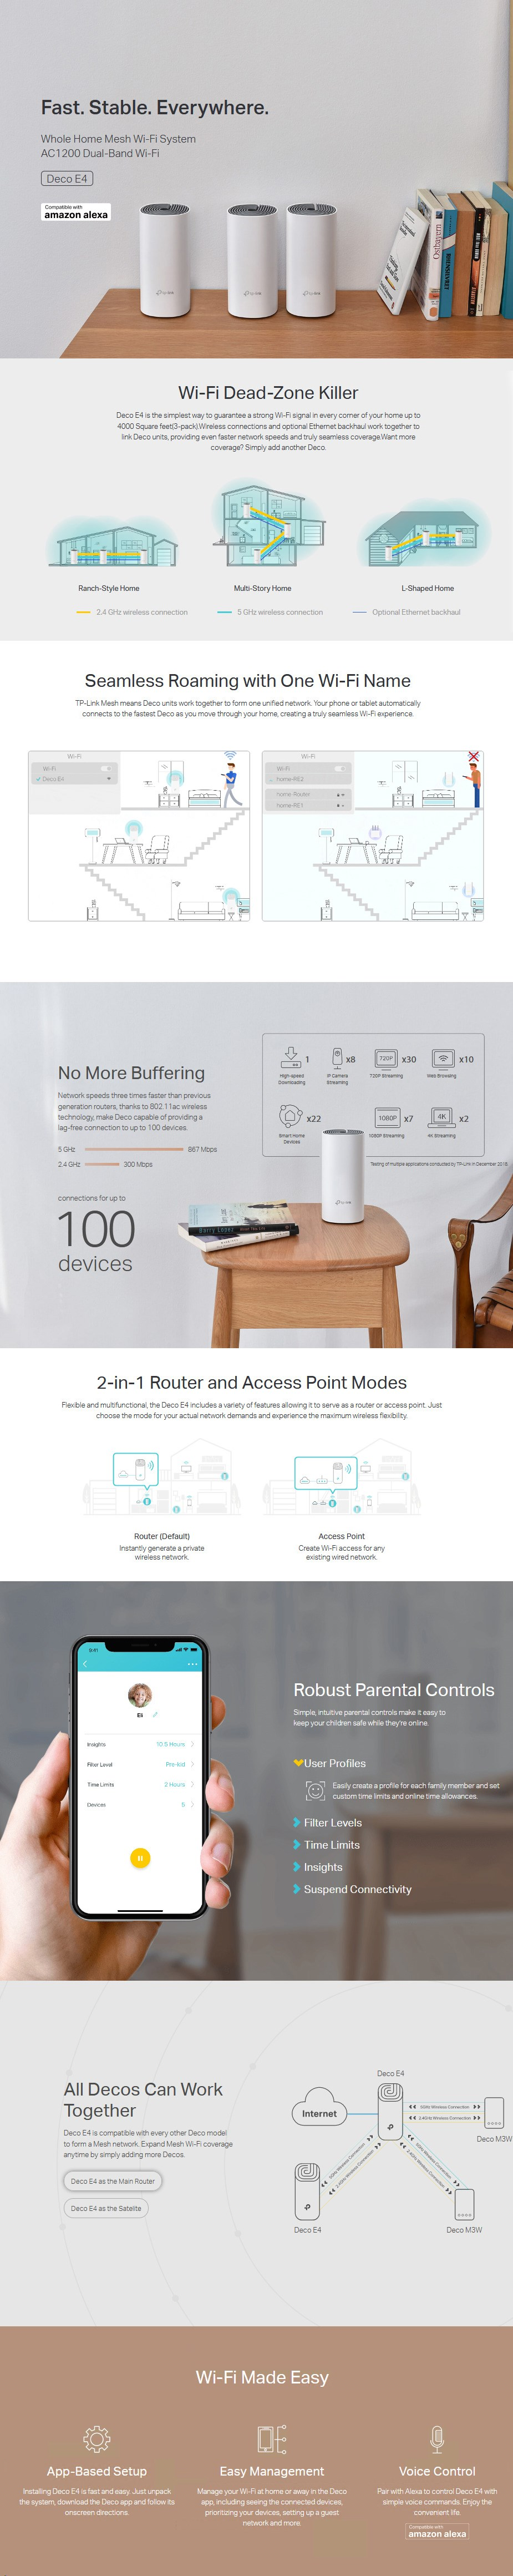 tplink_deco_e4_ac1200_whole_home_mesh_wifi_router_system_3_pack_ac34076_6.jpg